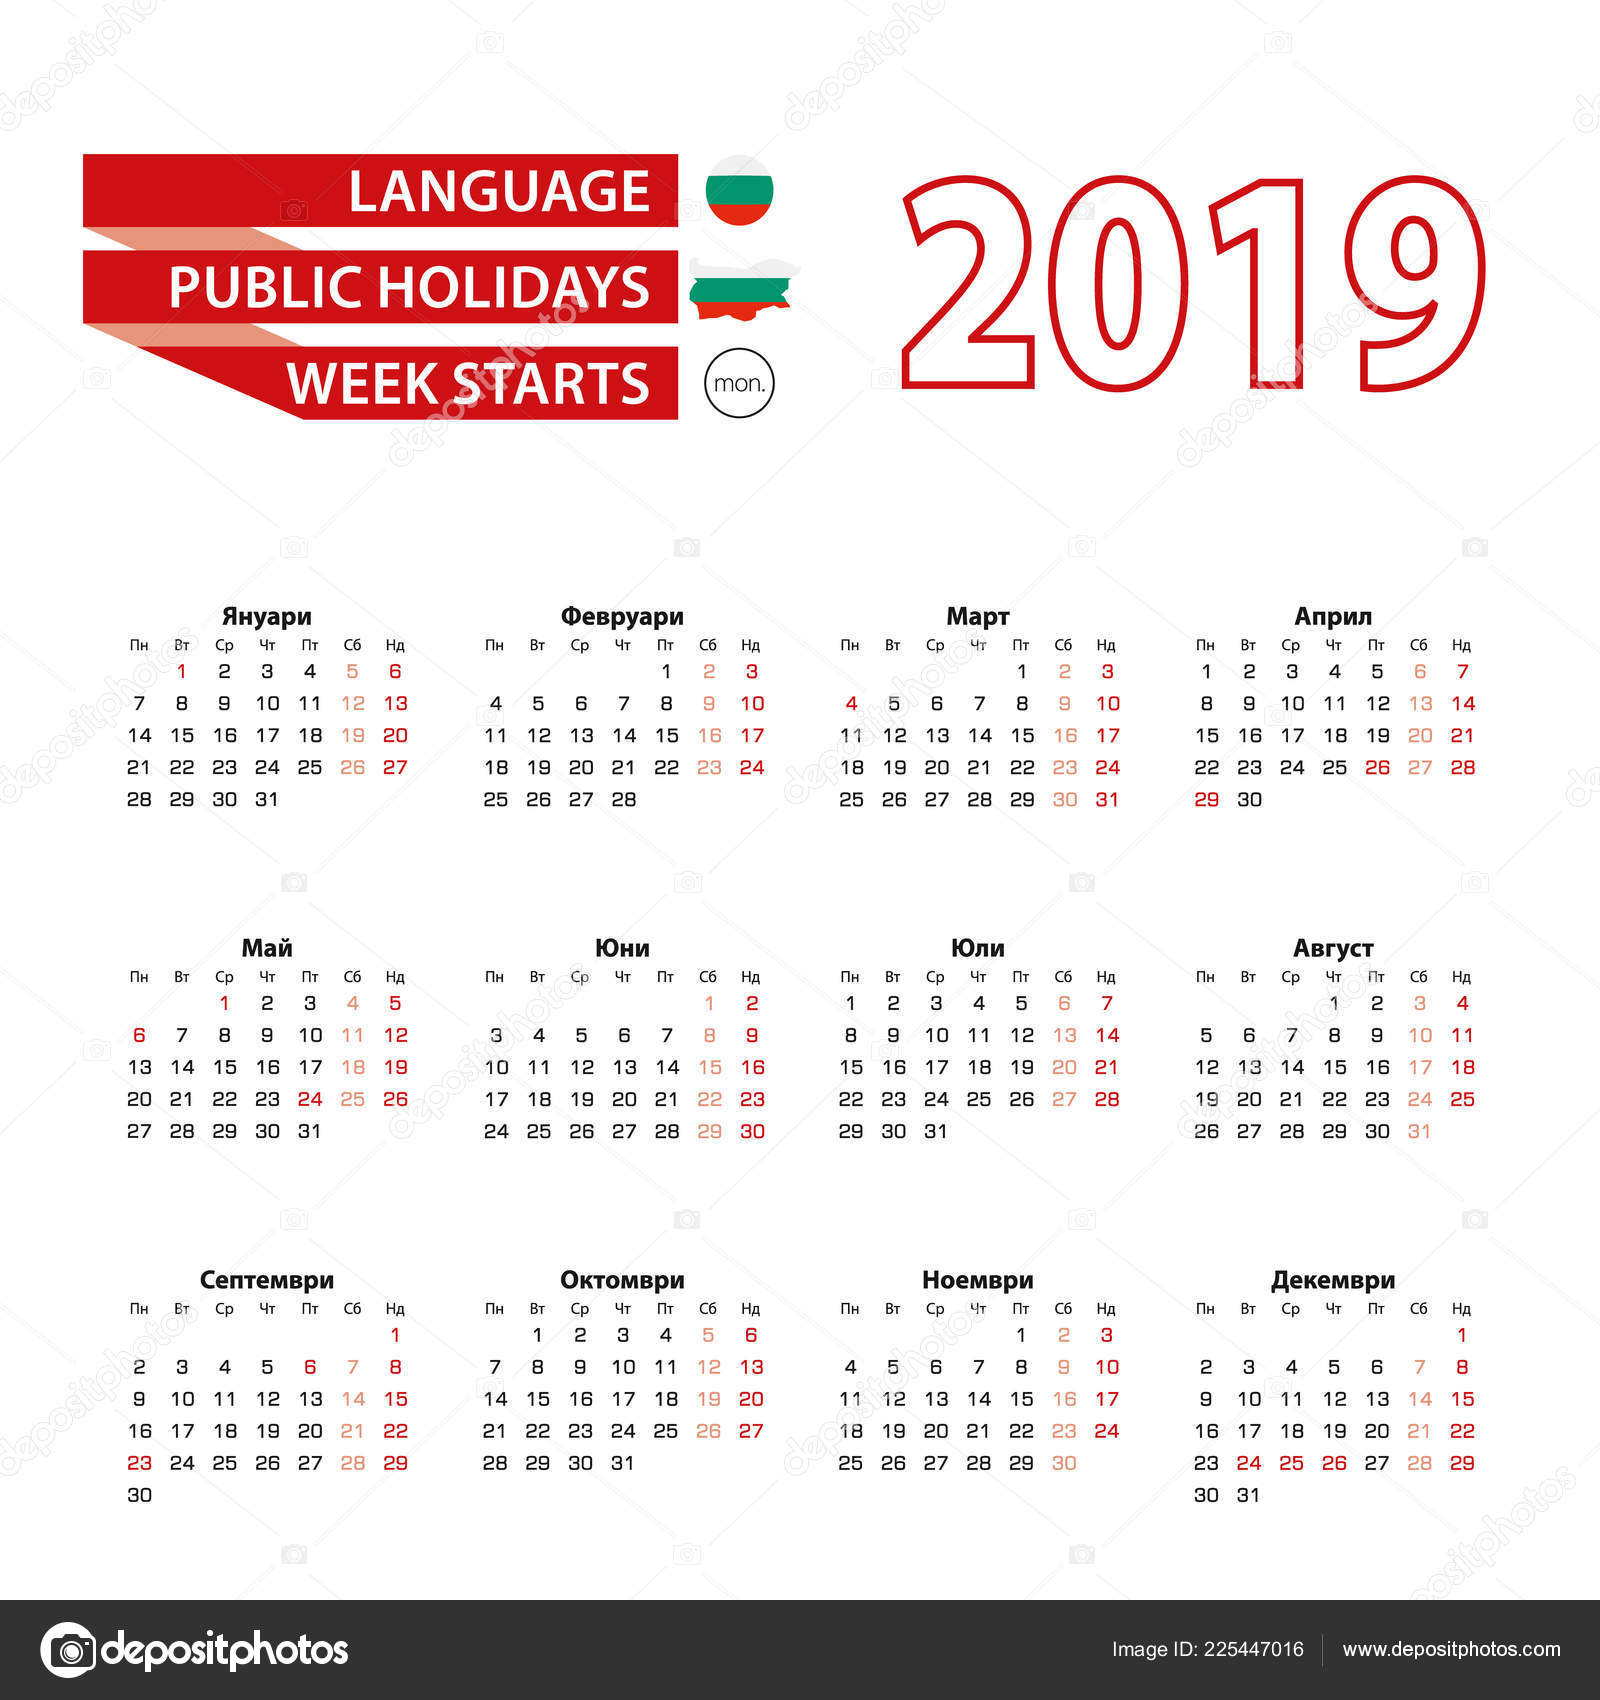 Calendar 2019 In Bulgarian Language With Public Holidays The